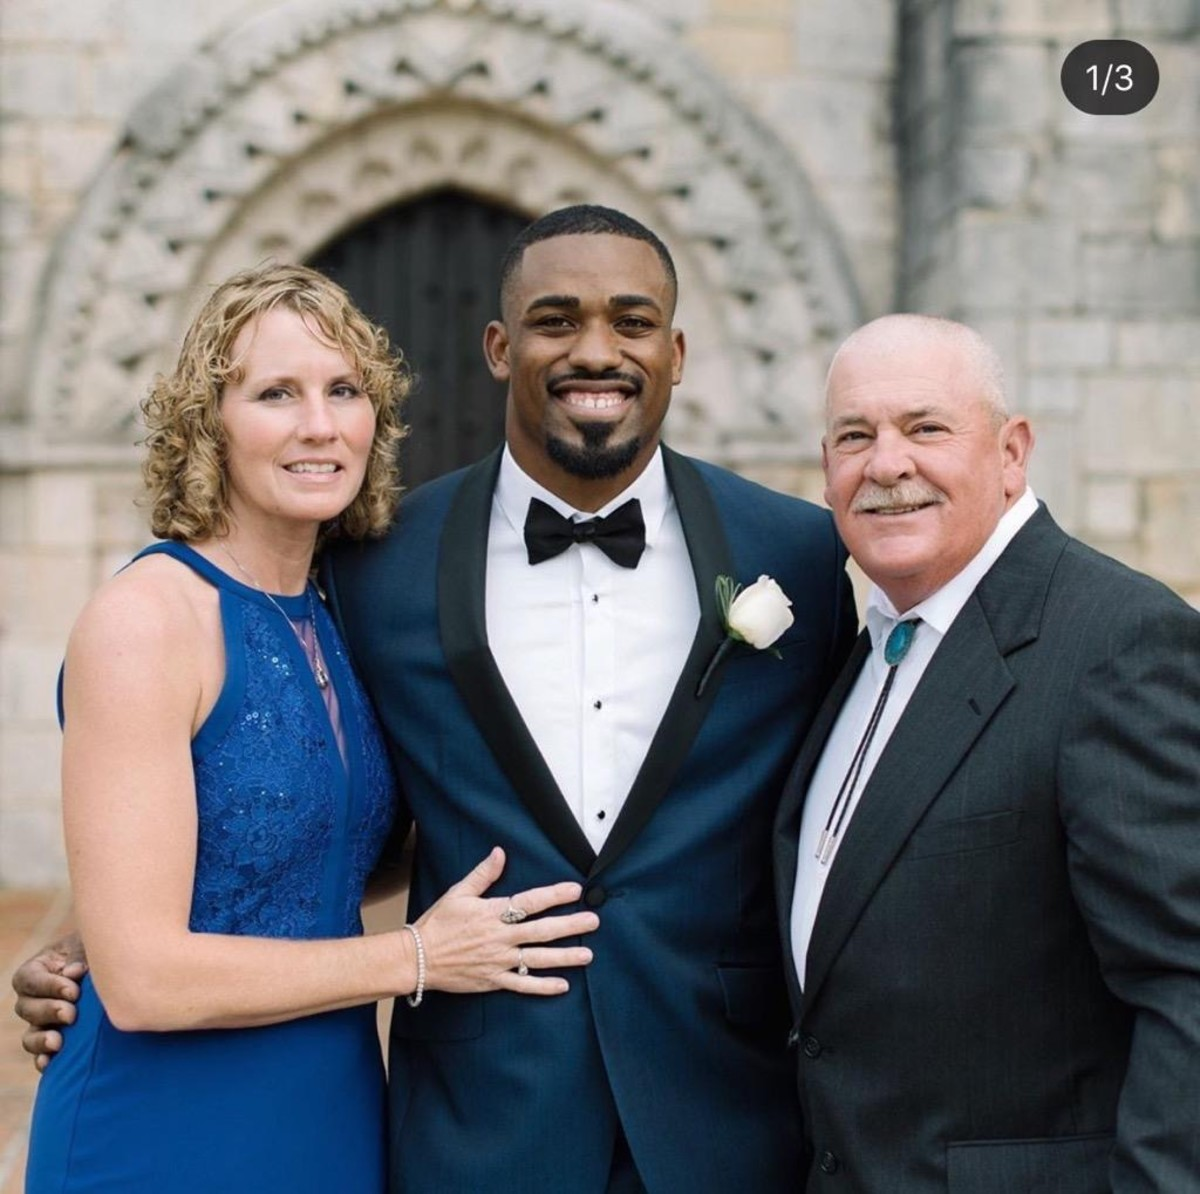 """Mostert at his 2017 wedding with his Pop Warner coach Mike """"Porkchop"""" Stokes and his wife DeAnne. (Shea Christine Photography)"""